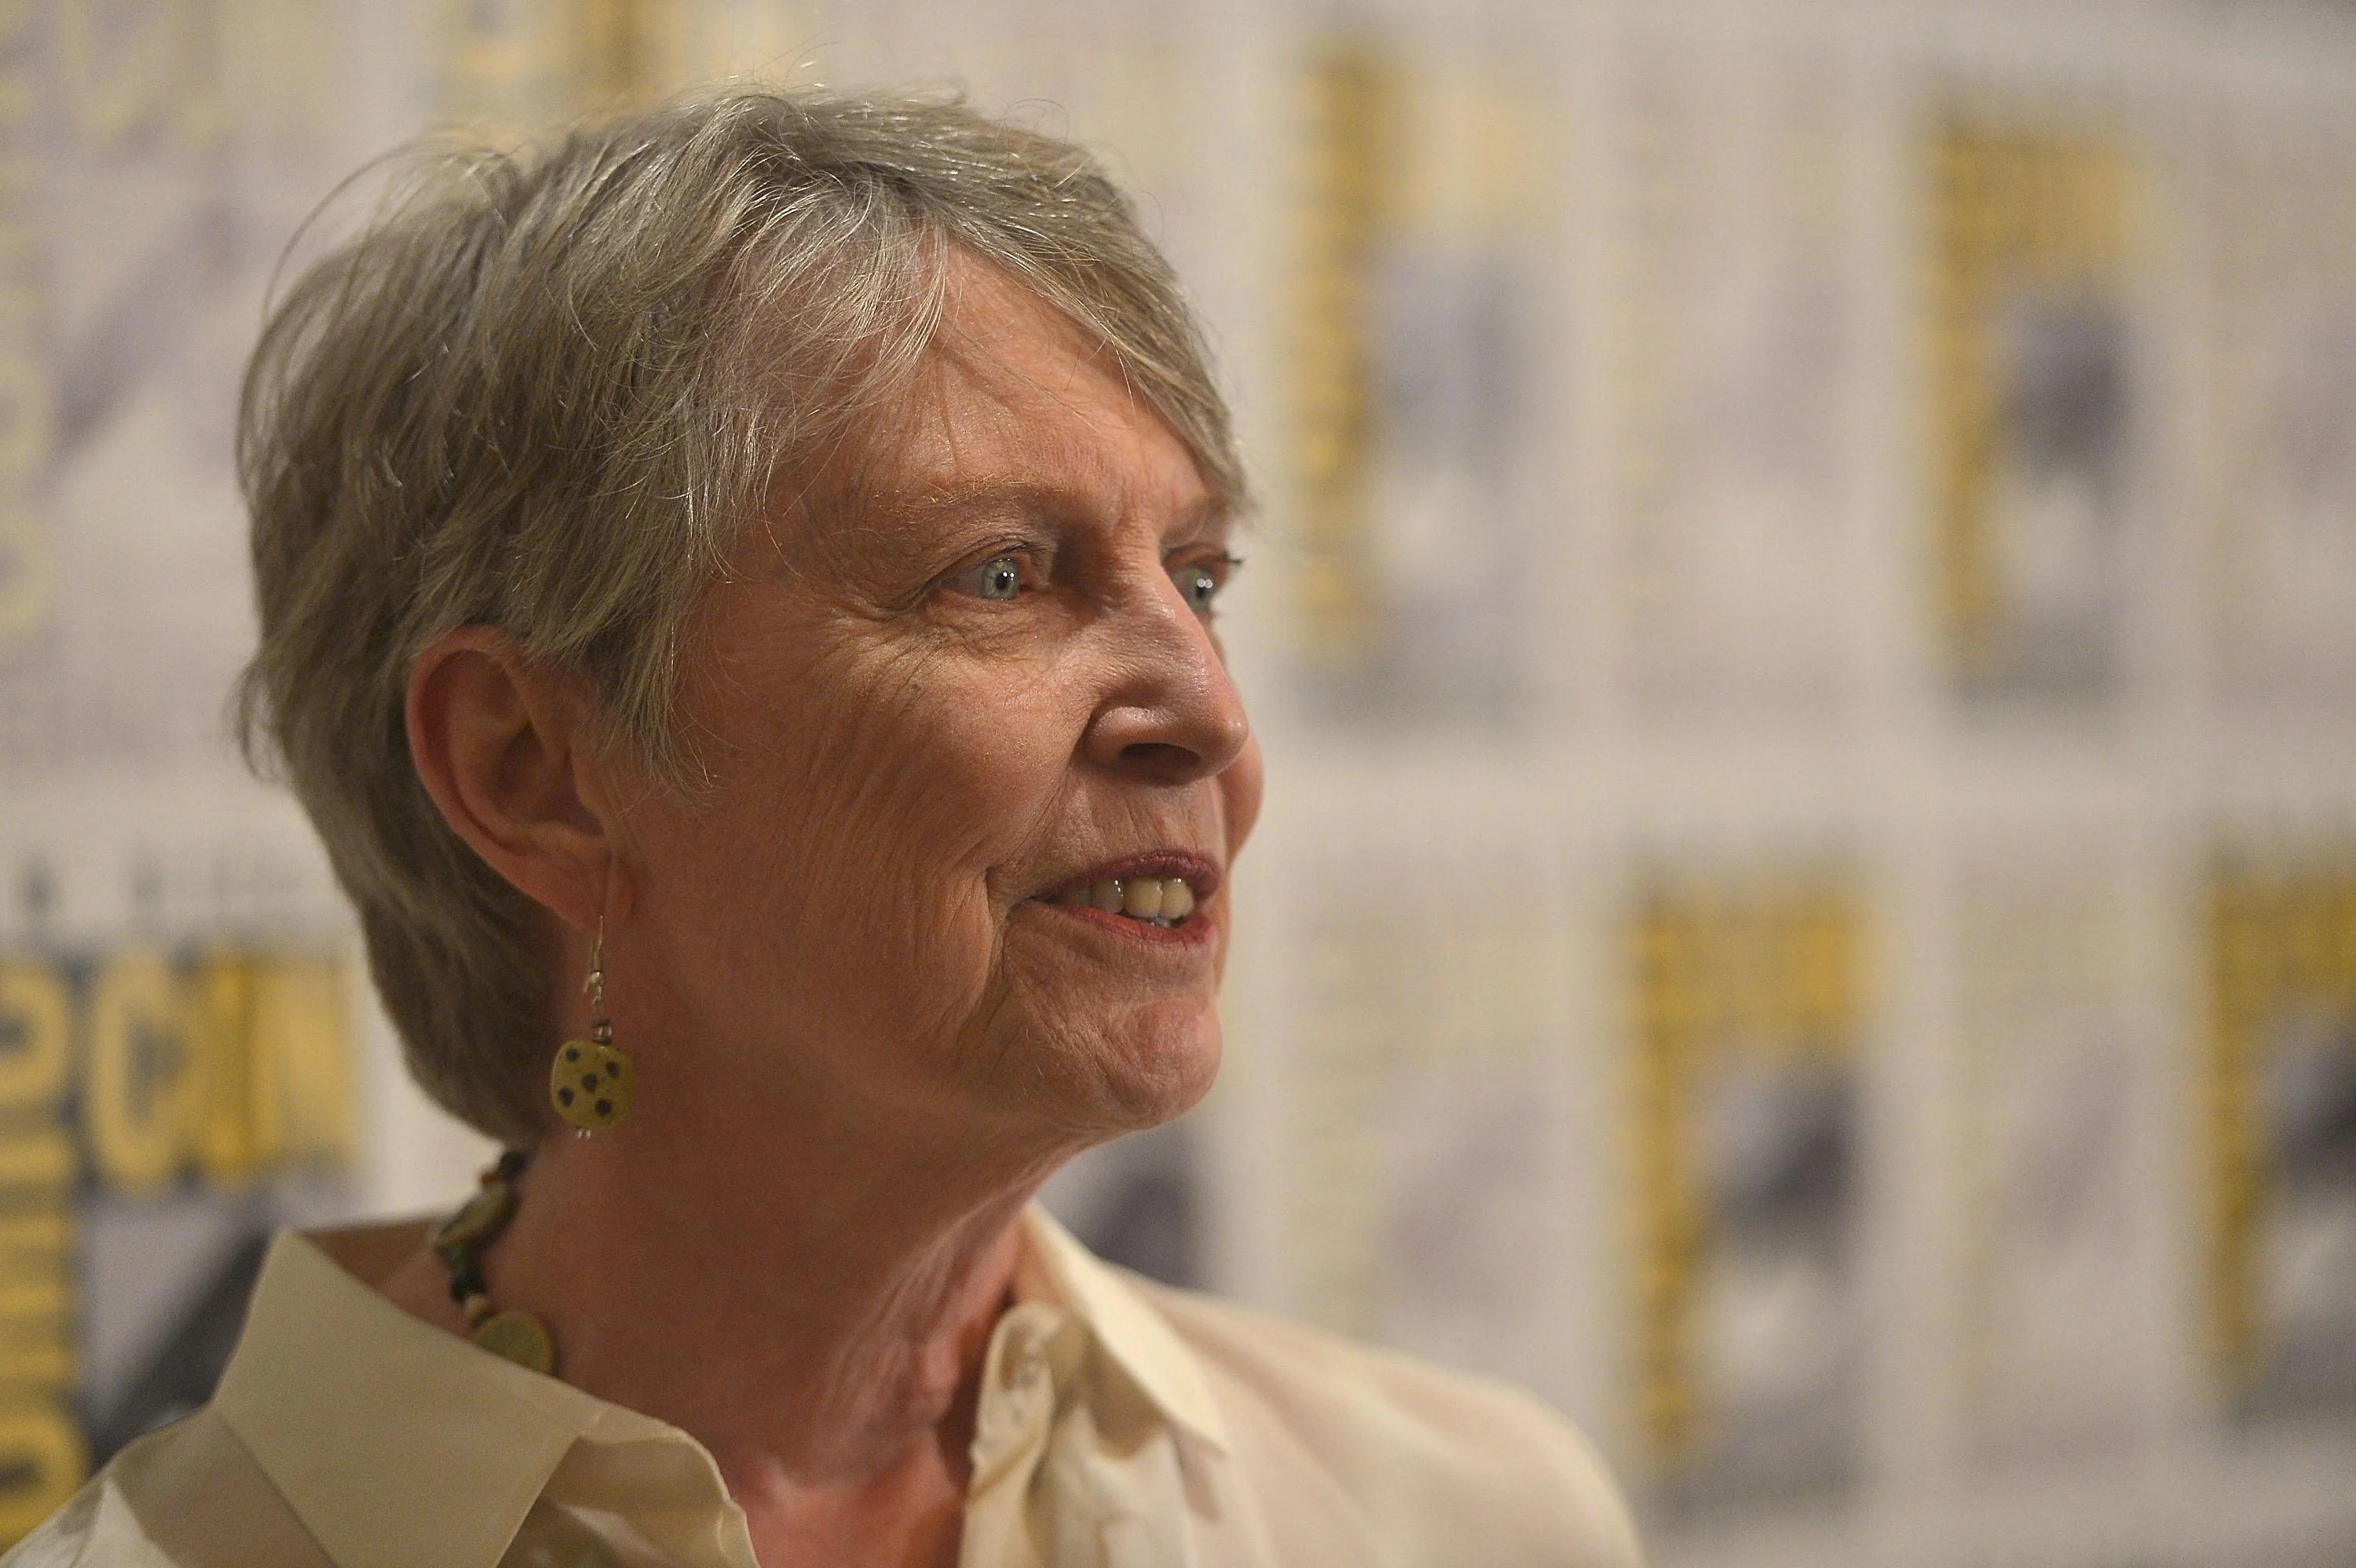 Lois Lowry And The Giver How The Author Influenced The Movie